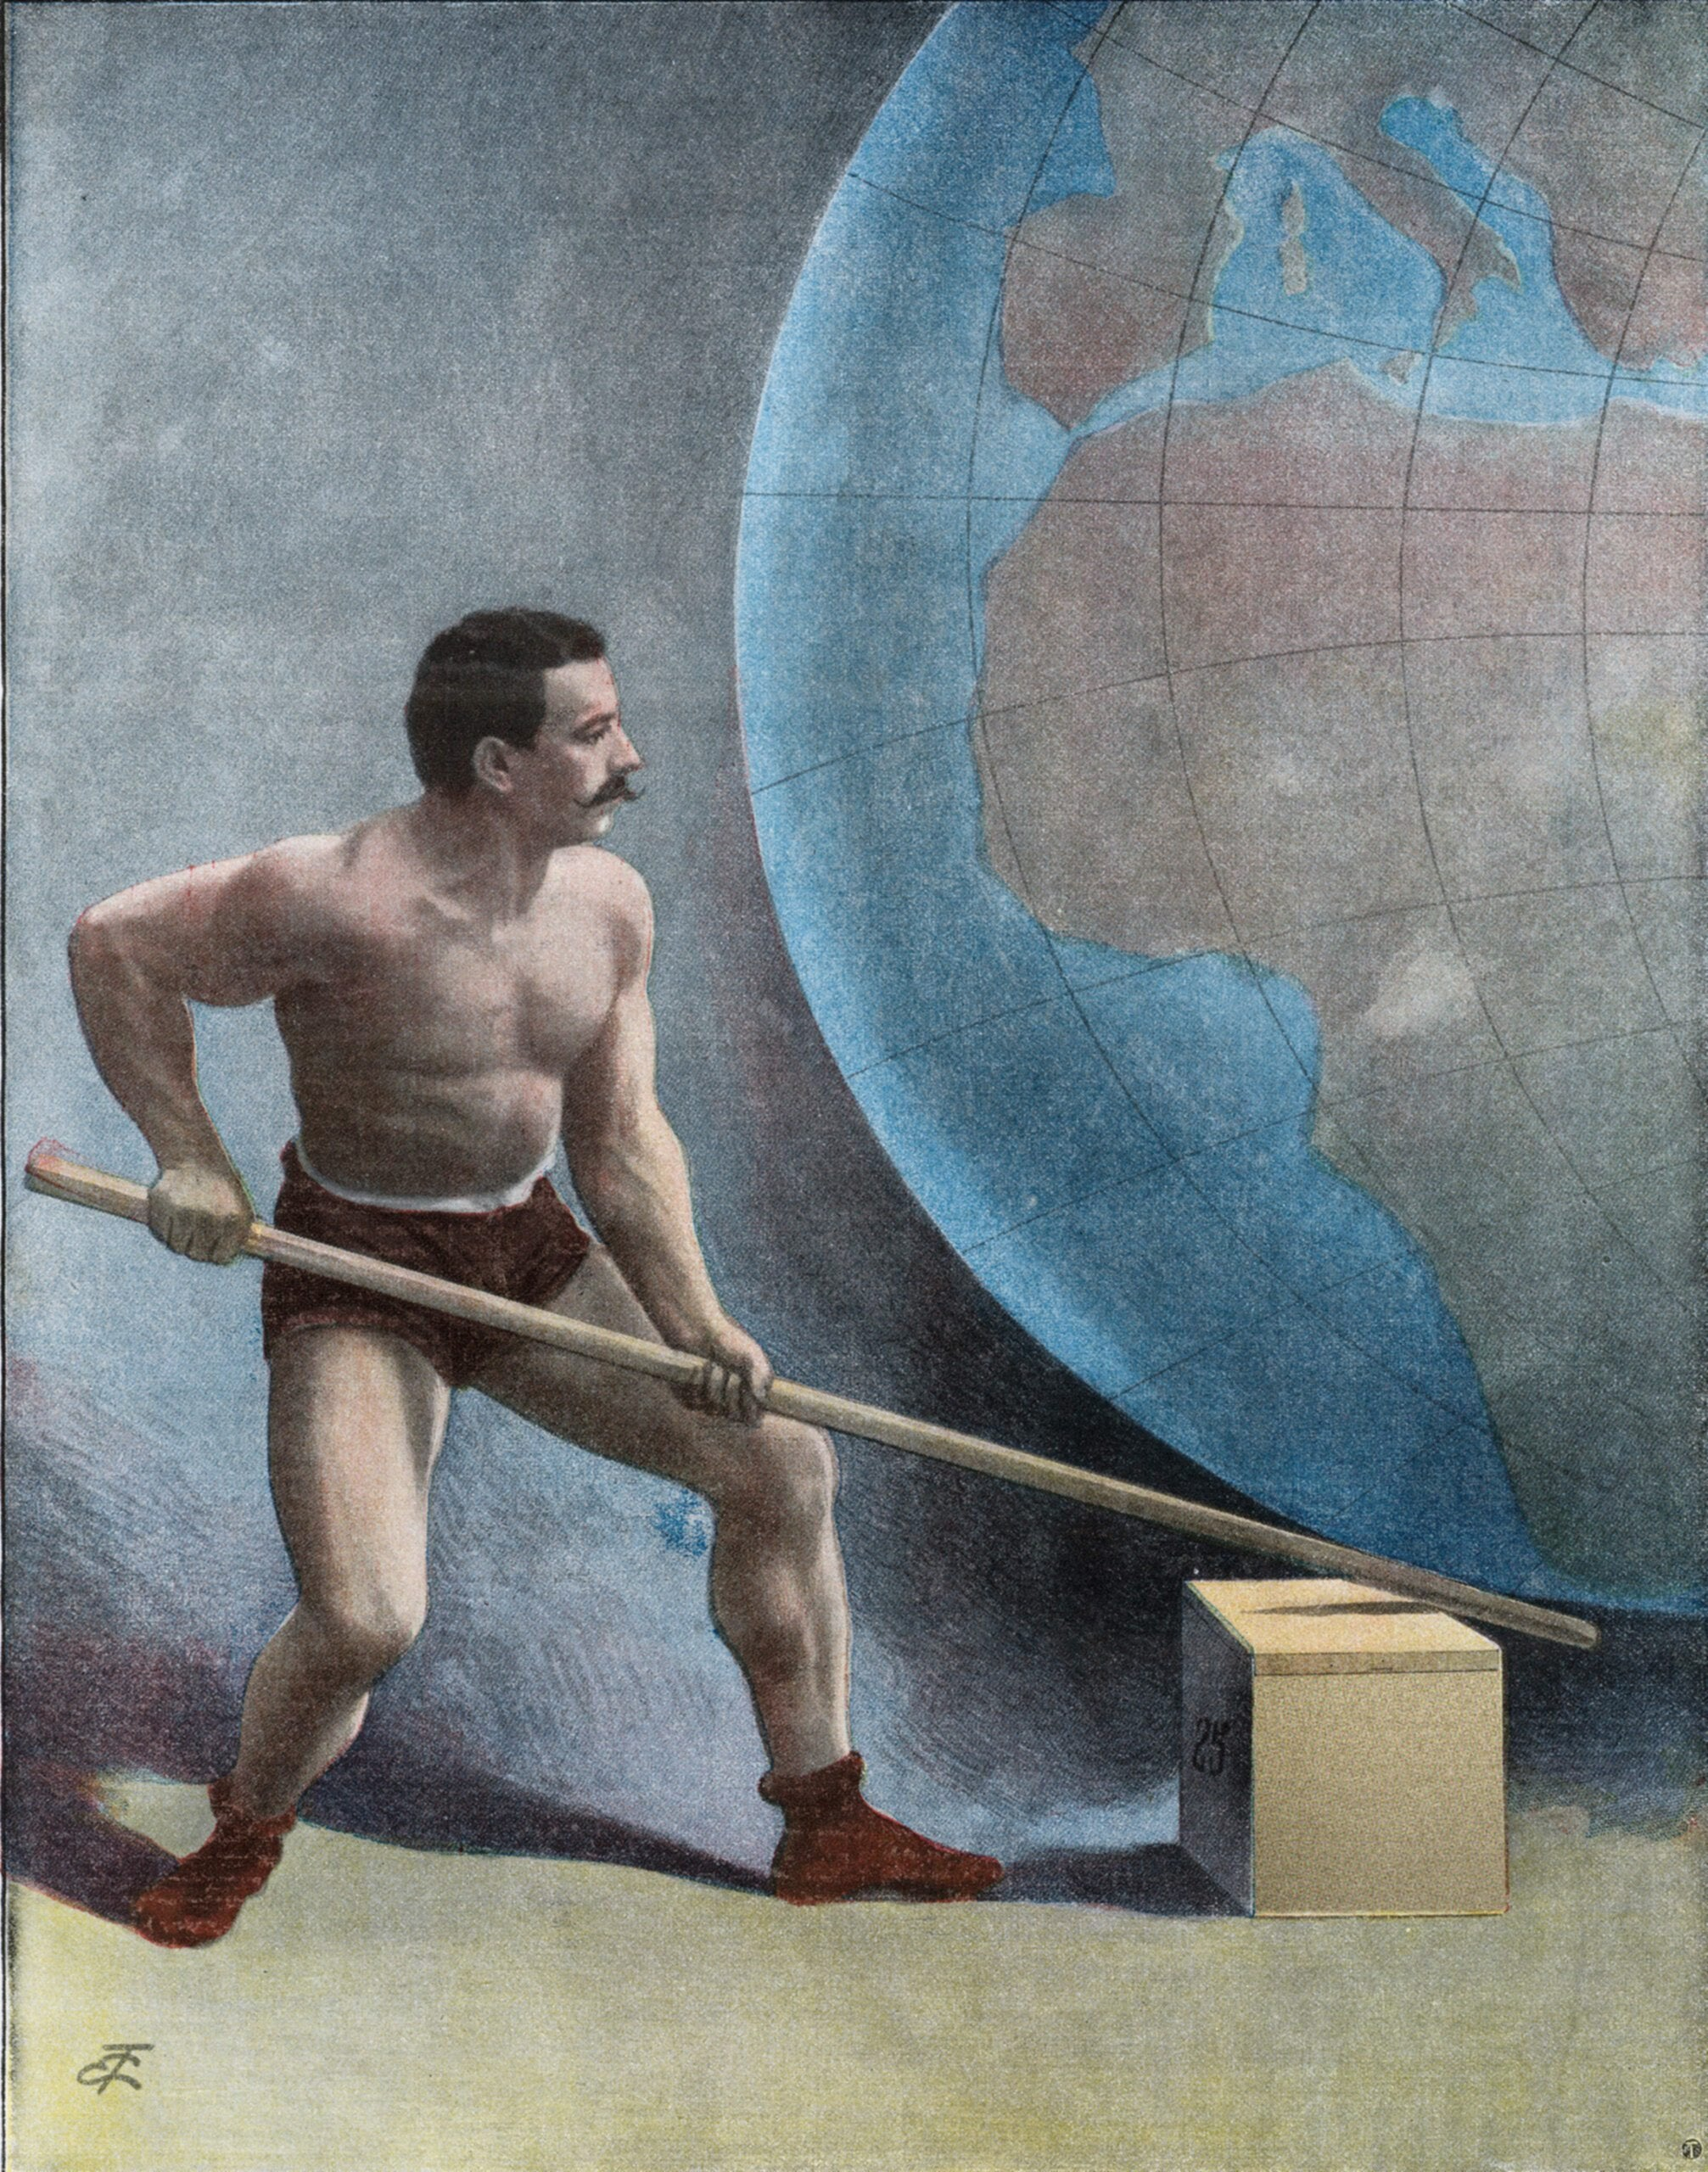 How we entered the age of the strongman